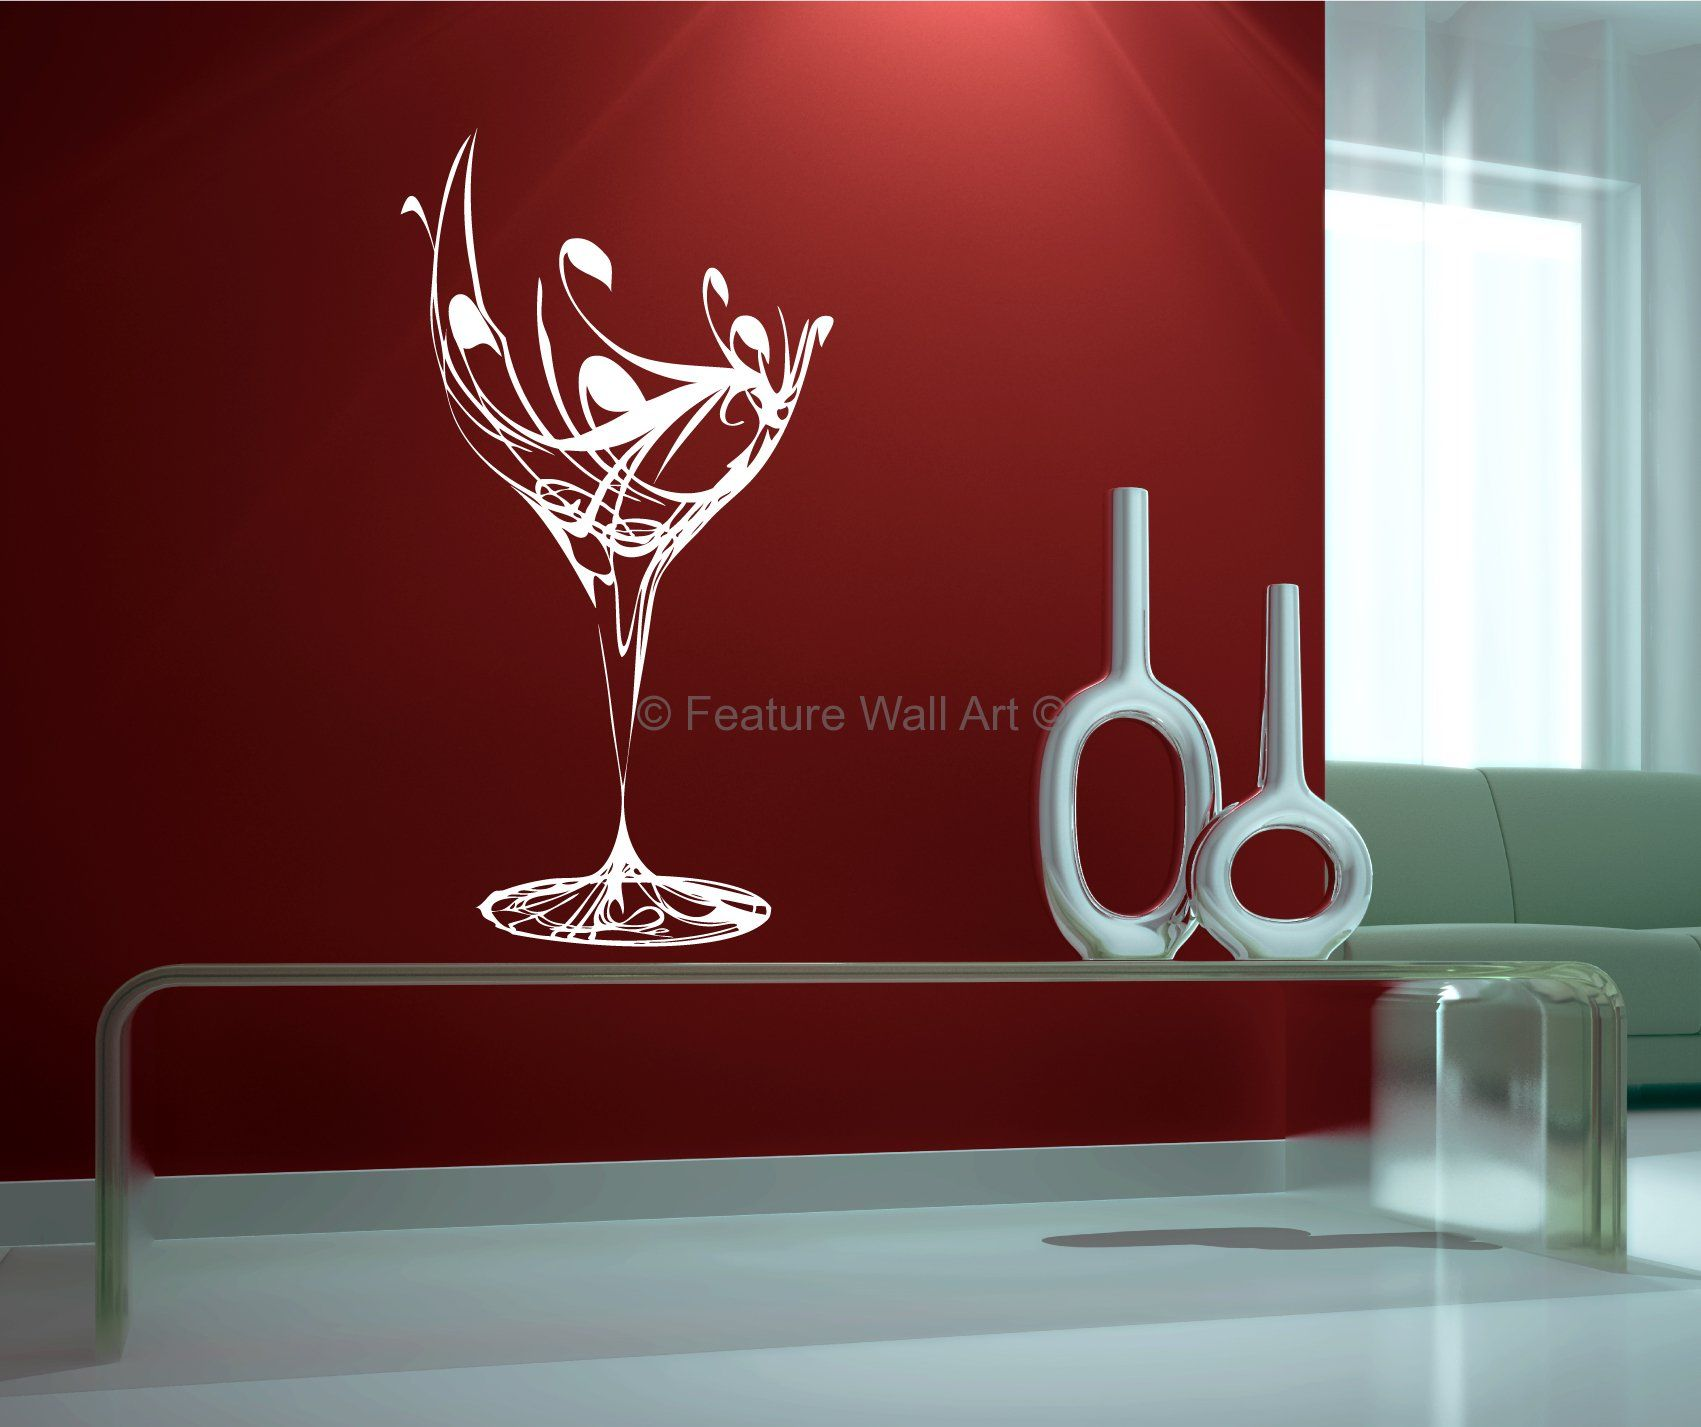 Decorative Glass Art